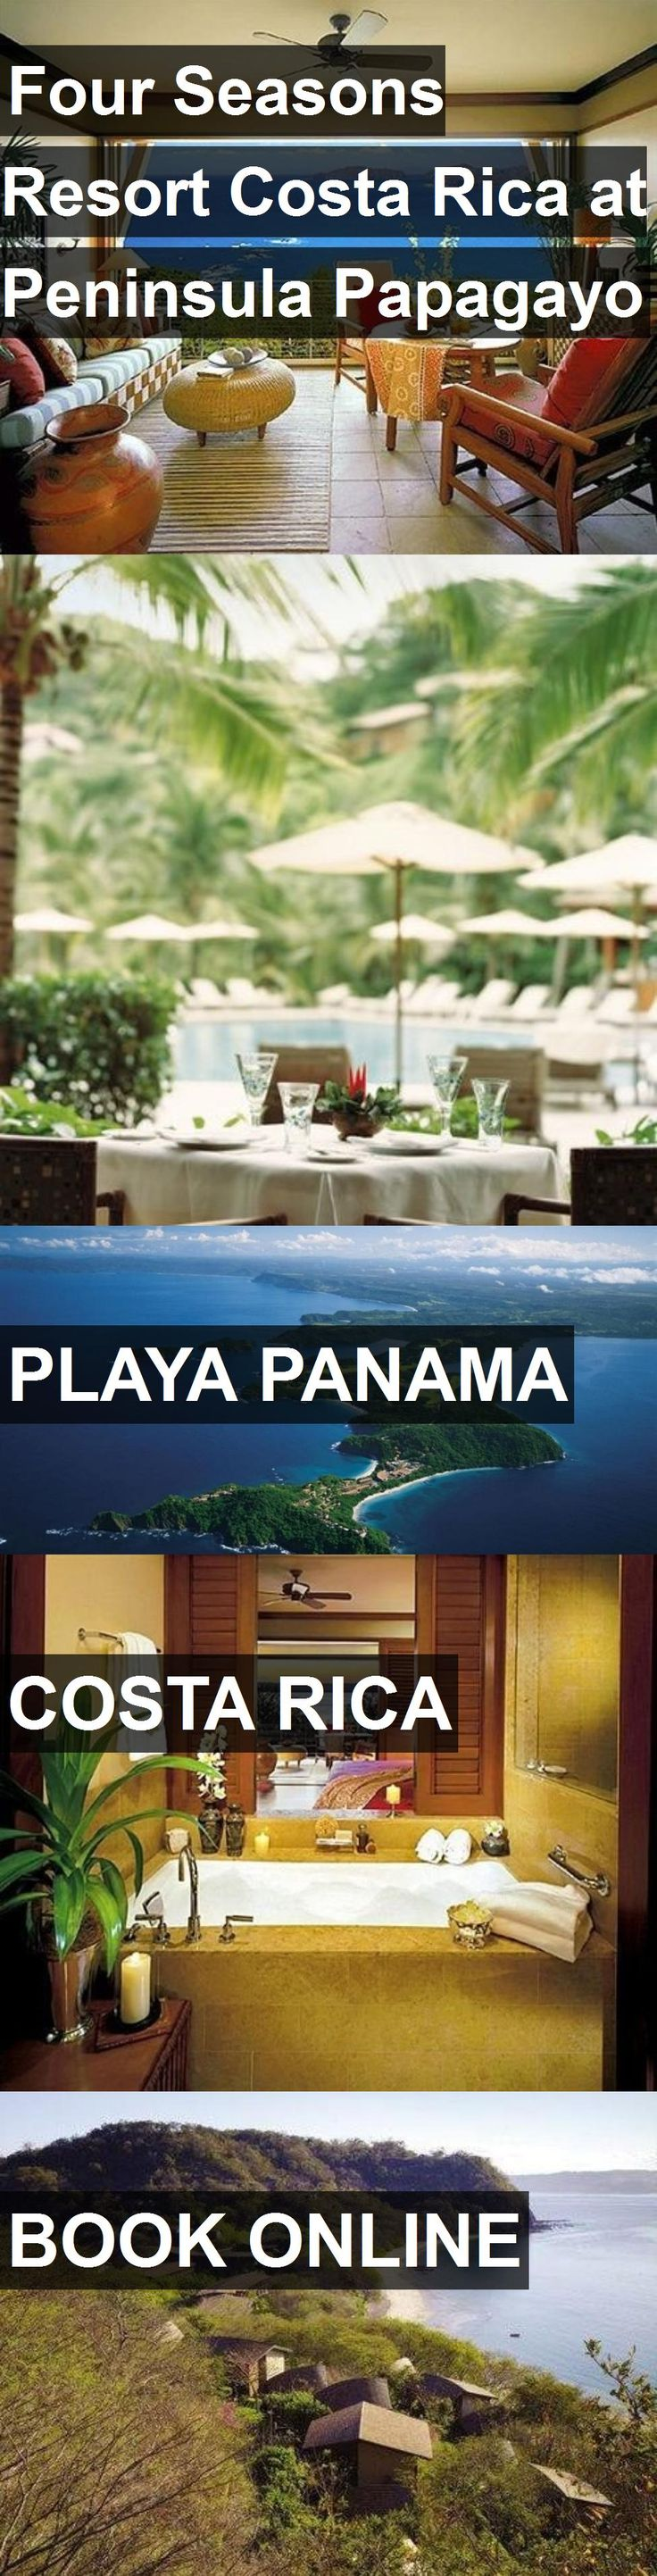 Hotel Four Seasons Resort Costa Rica at Peninsula Papagayo in Playa Panama, Costa Rica. For more information, photos, reviews and best prices please follow the link. #CostaRica #PlayaPanama #hotel #travel #vacation